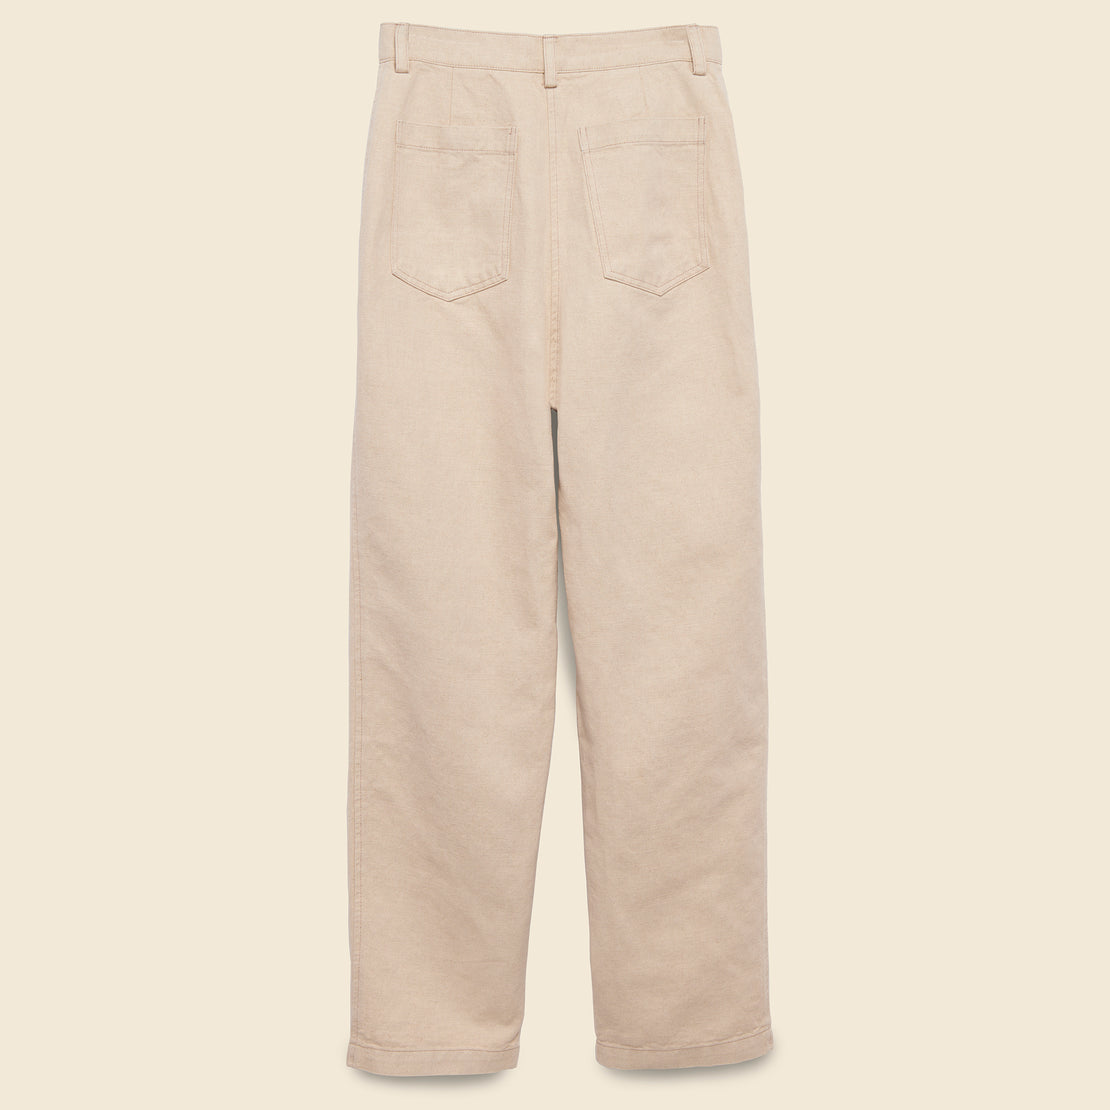 Narrow Cargo Pant - Natural